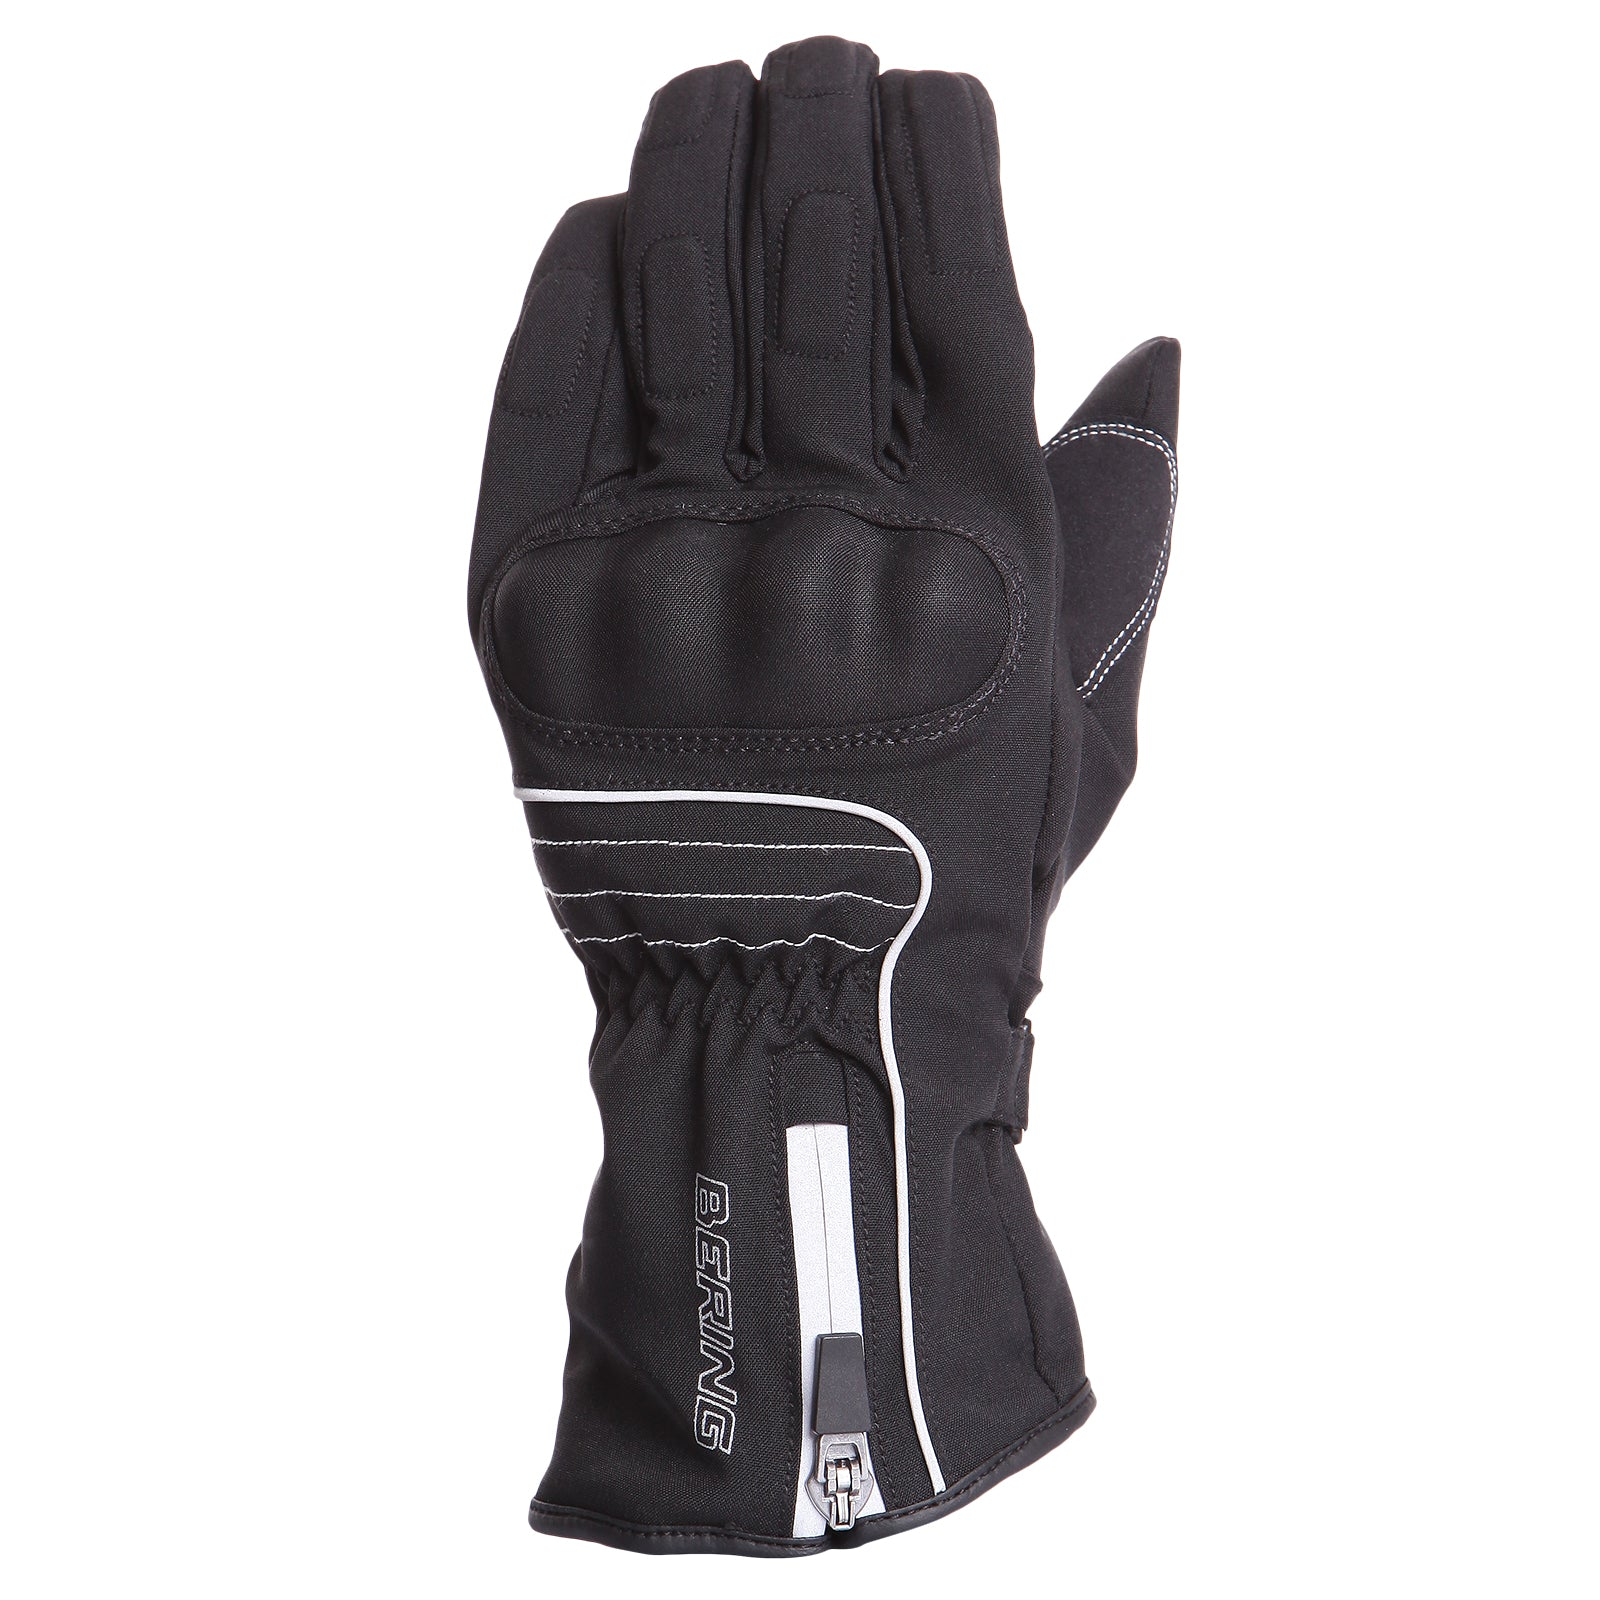 Bering Auria Evo Ladies Gloves, Ladies Gloves, Bering - Averys Motorcycles